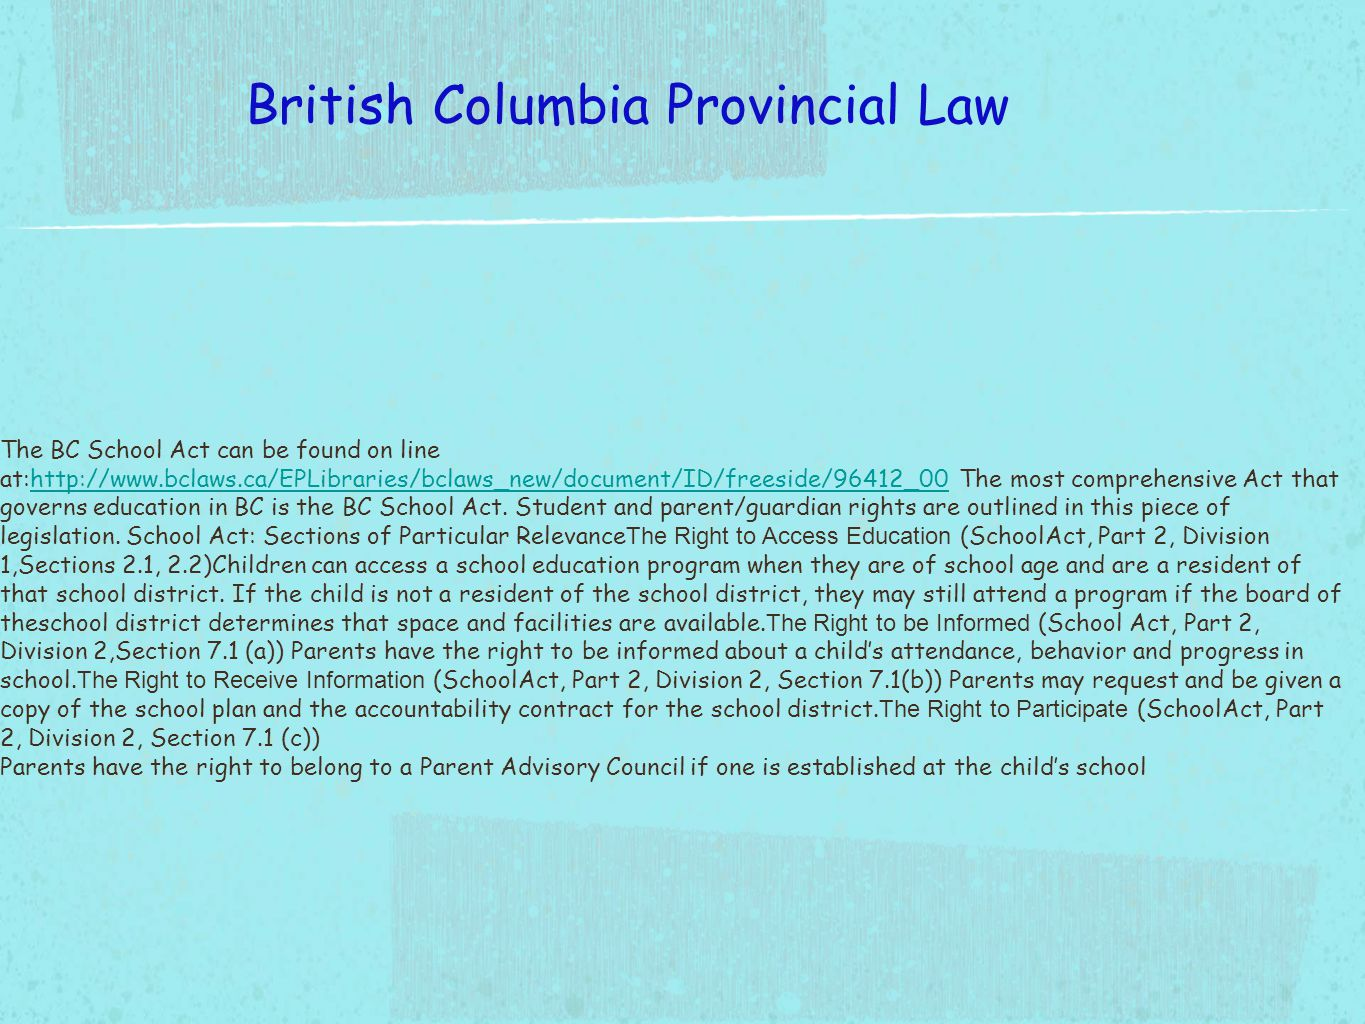 The BC School Act can be found on line at:http://www.bclaws.ca/EPLibraries/bclaws_new/document/ID/freeside/96412_00 The most comprehensive Act that governs education in BC is the BC School Act.